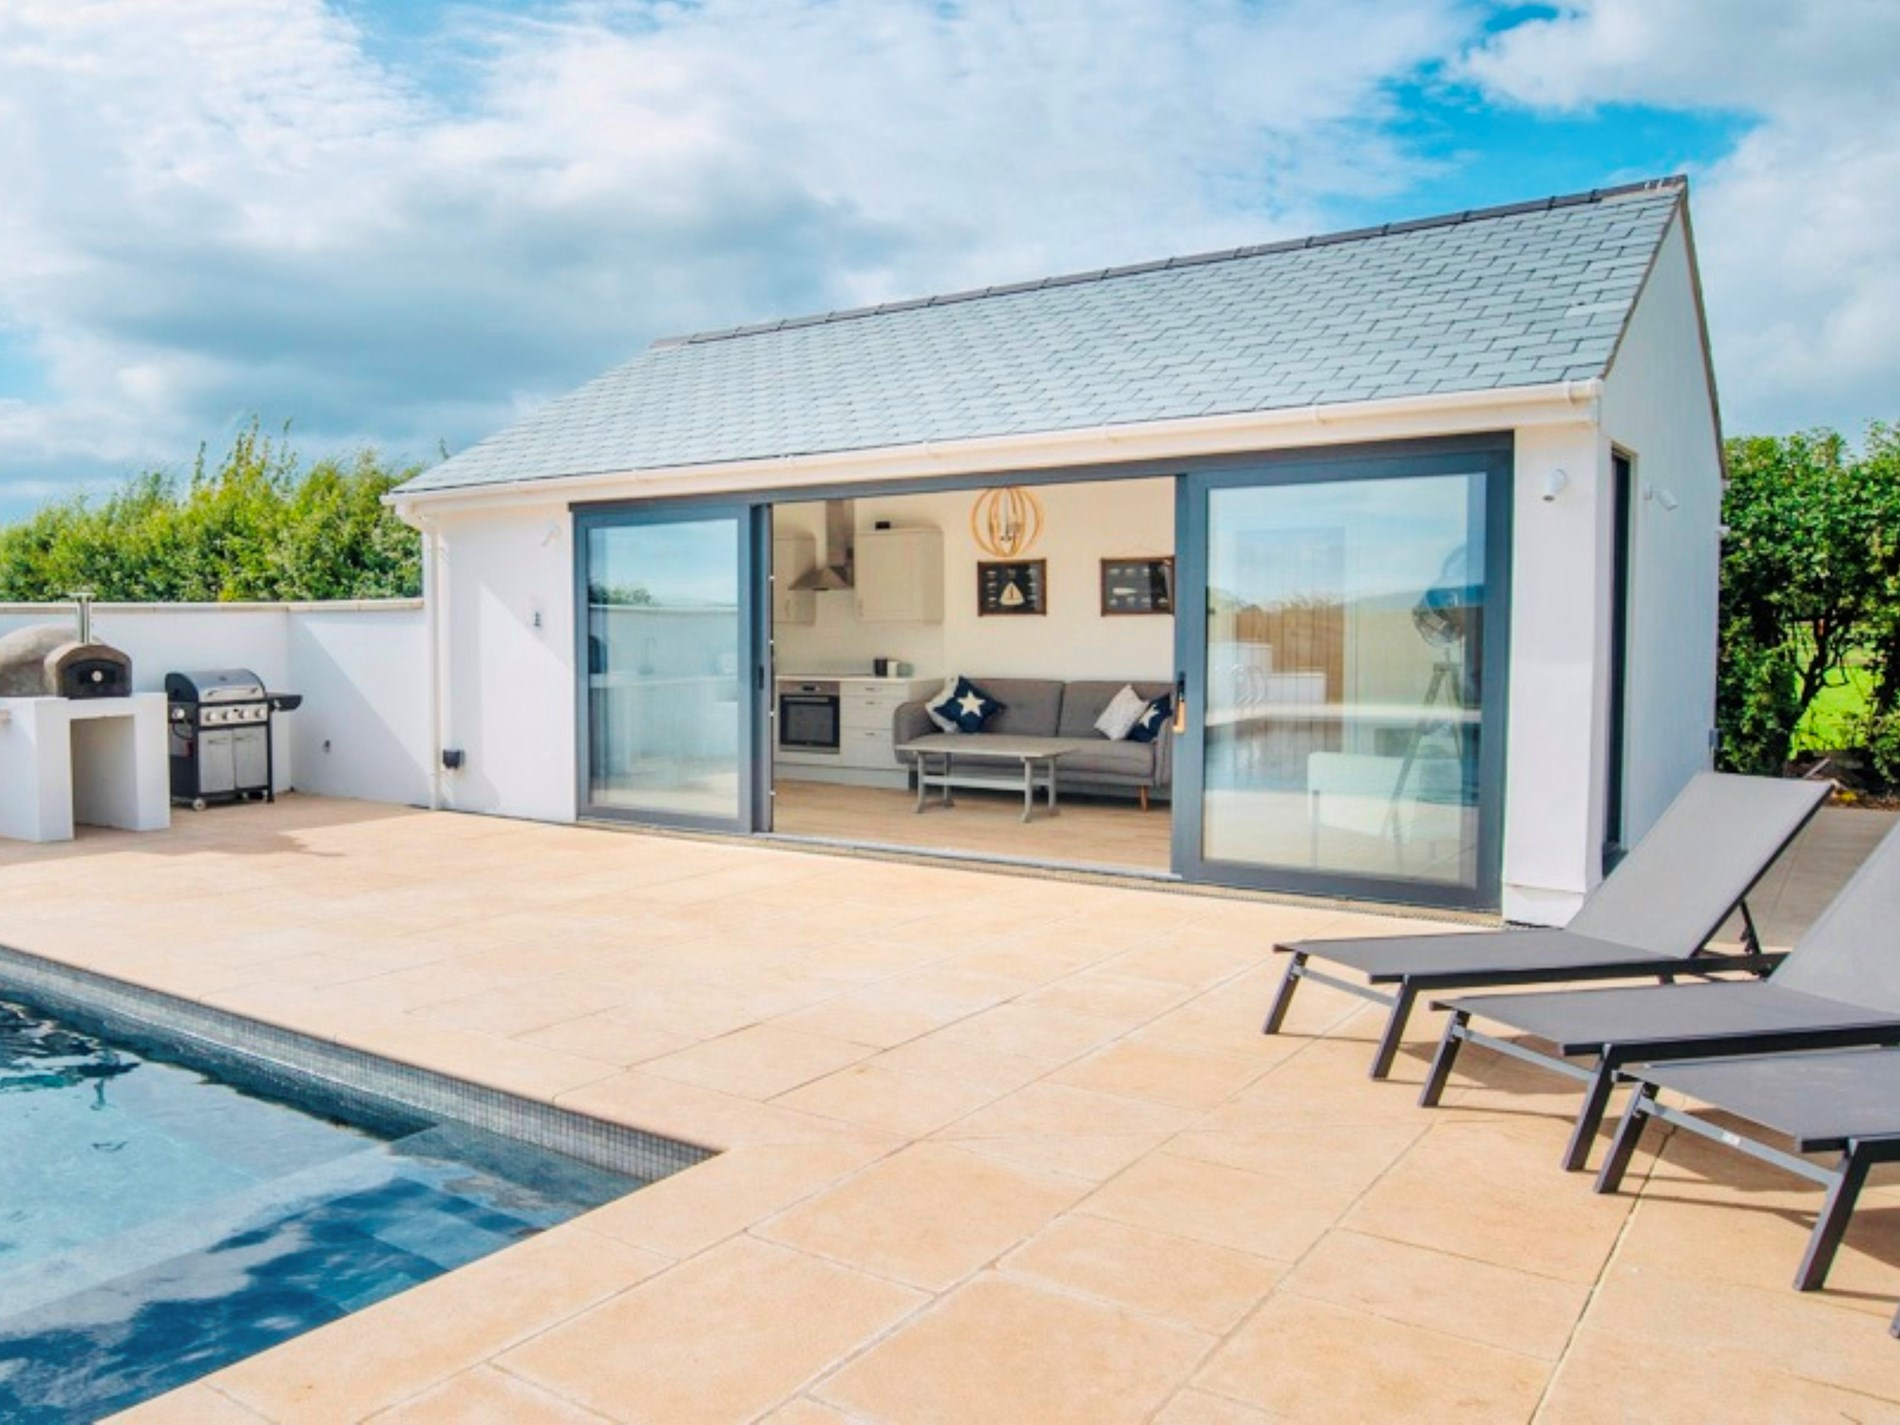 6 Bedroom Cottage in Taunton, Dorset and Somerset